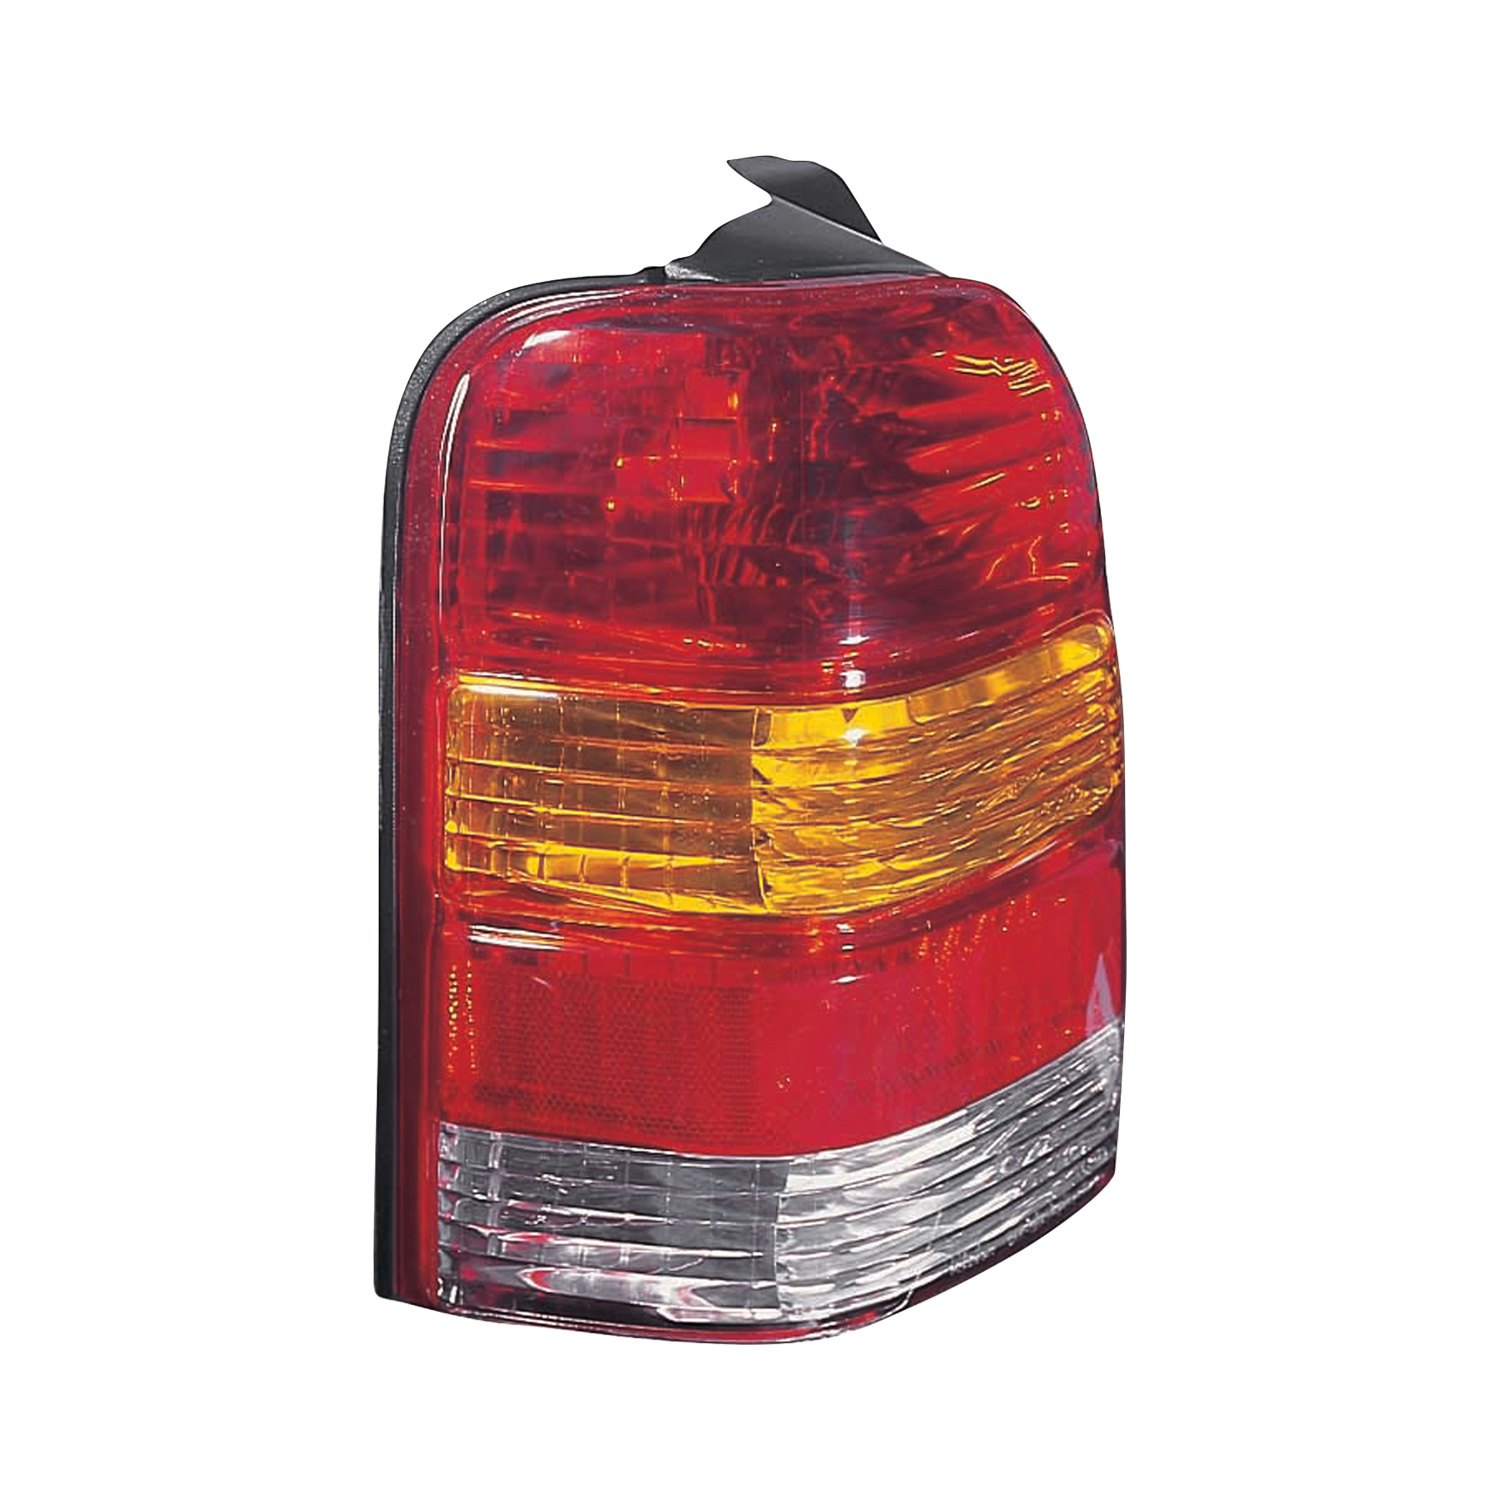 k metal ford escape 2006 2007 replacement tail light. Black Bedroom Furniture Sets. Home Design Ideas